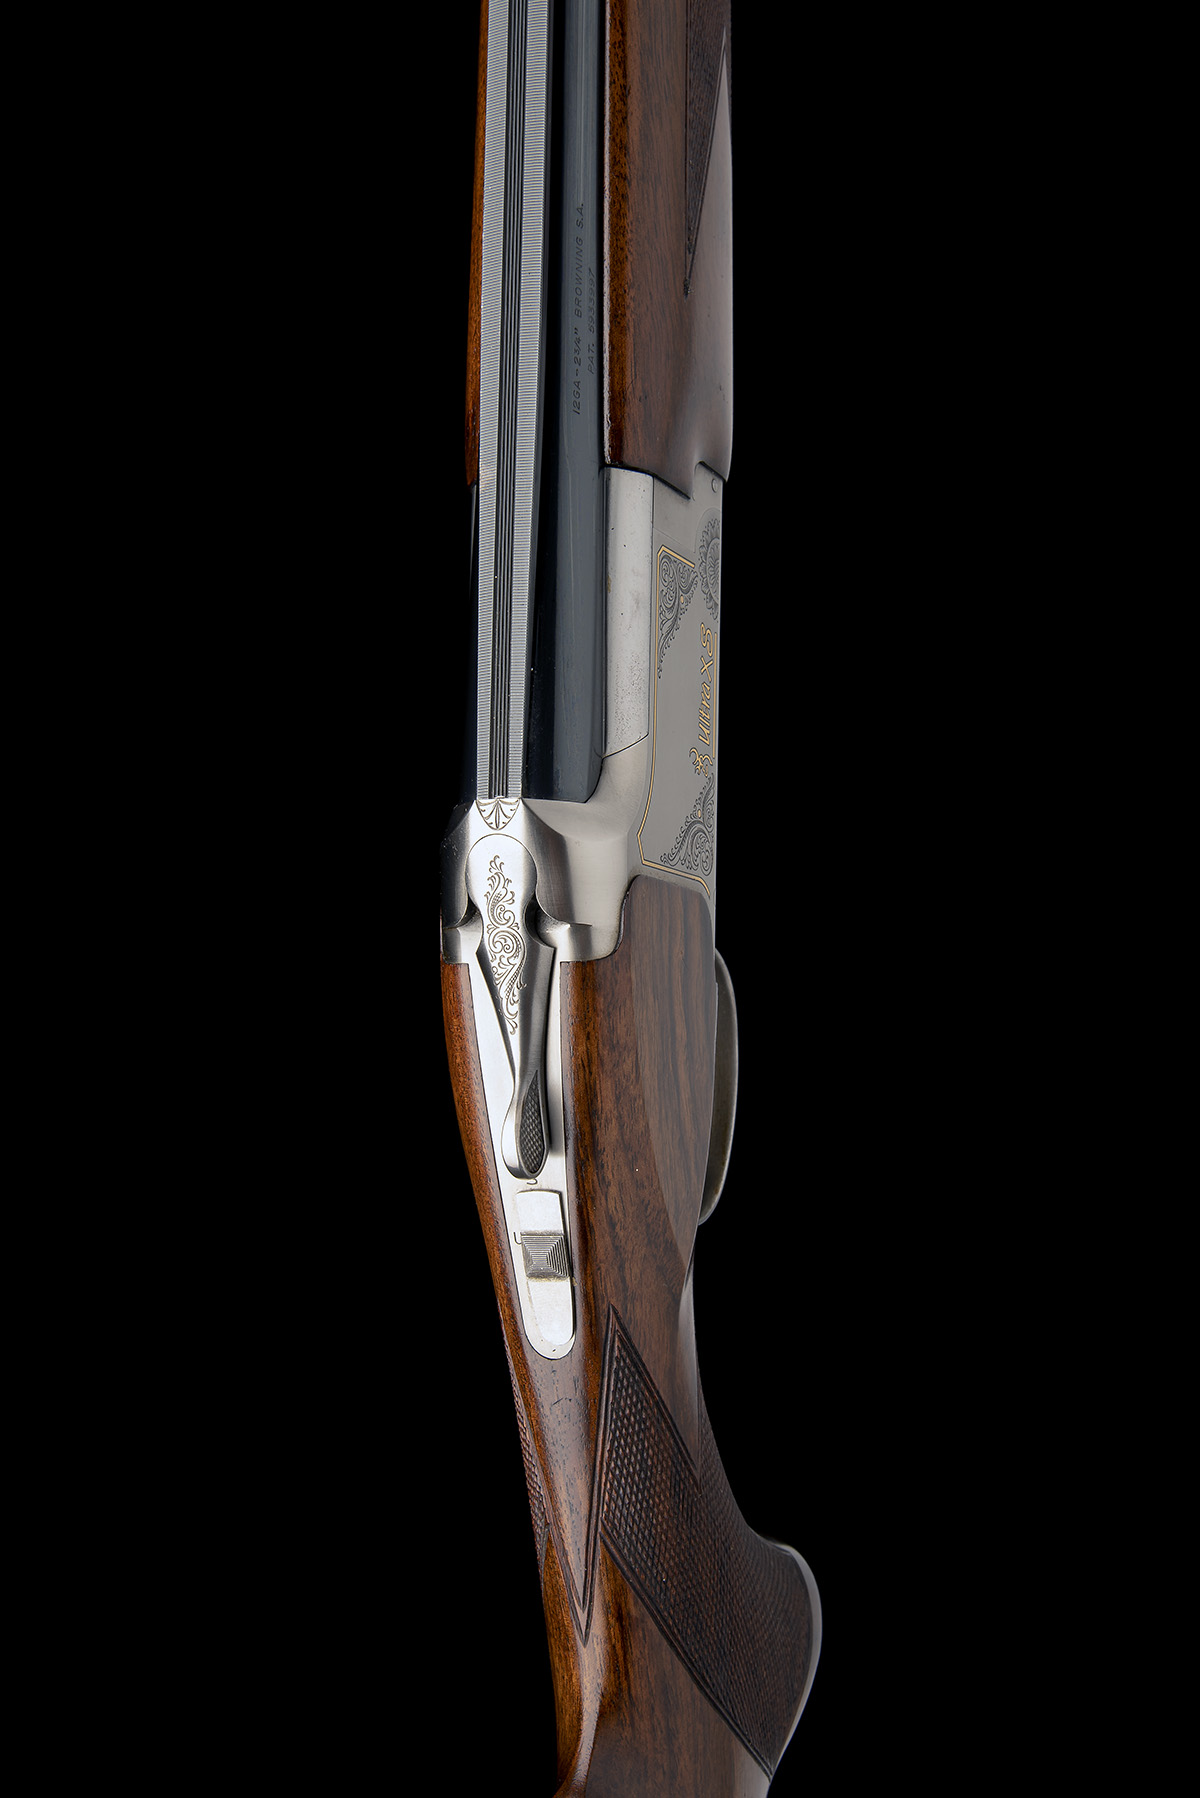 BROWNING S.A. A 12-BORE 'ULTRA XS' SINGLE-TRIGGER OVER AND UNDER EJECTOR, serial no. 45867MX, for - Image 4 of 8